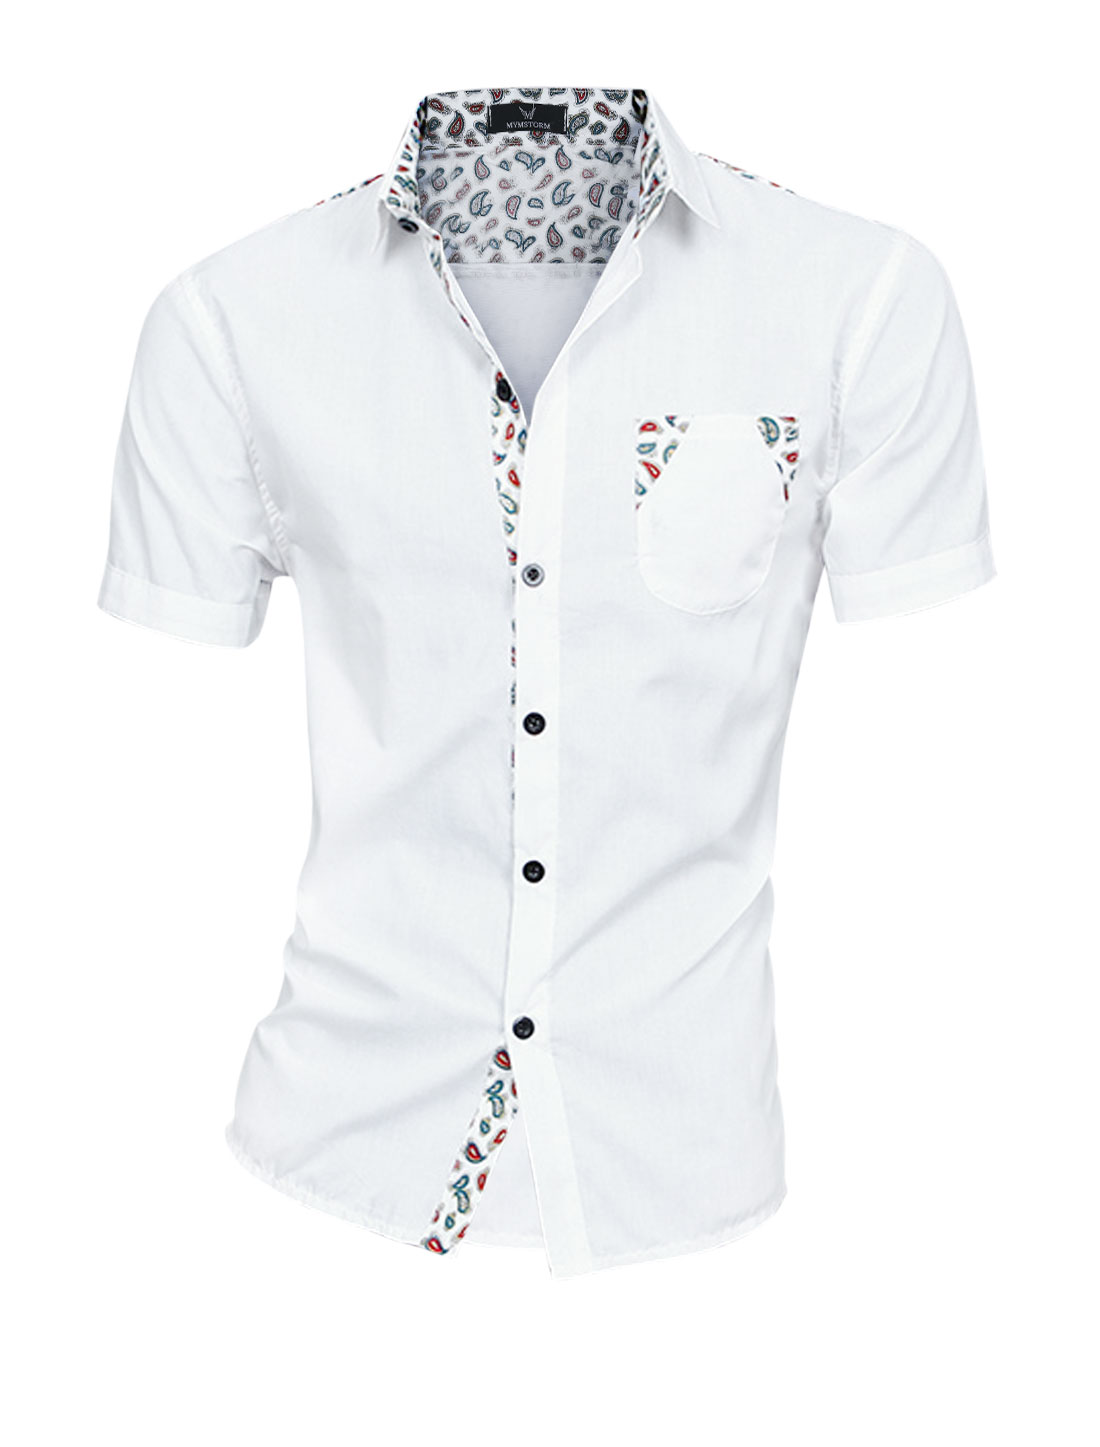 Men Paisleys Pattern Short Sleeve Patching Soft NEW Top Shirt White M